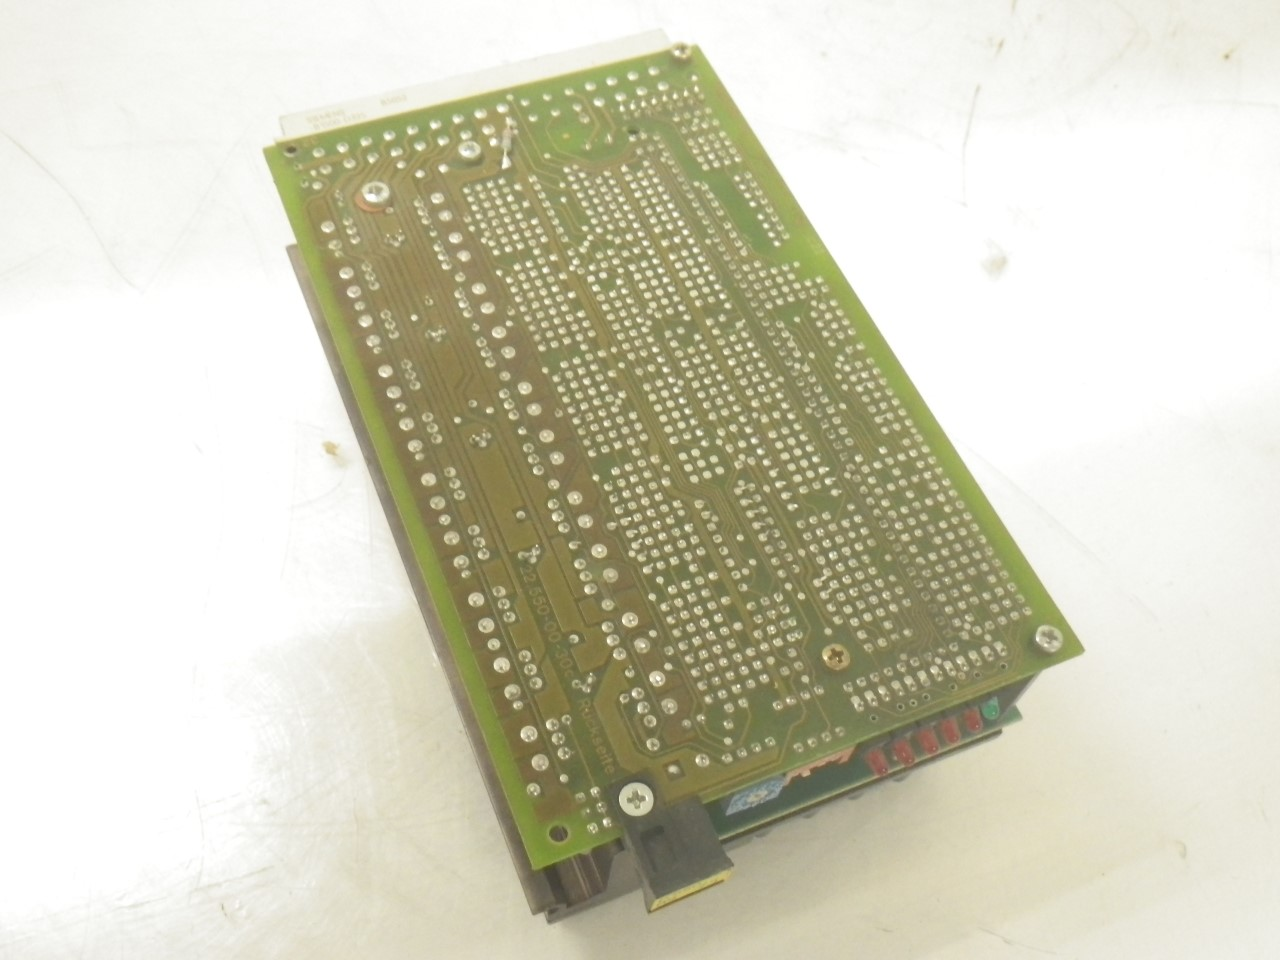 IMGP8387D 550 RS 19 Berger Lahr Stepper Drive + Siemens B1500-D325 Board(Used Tested) (12)